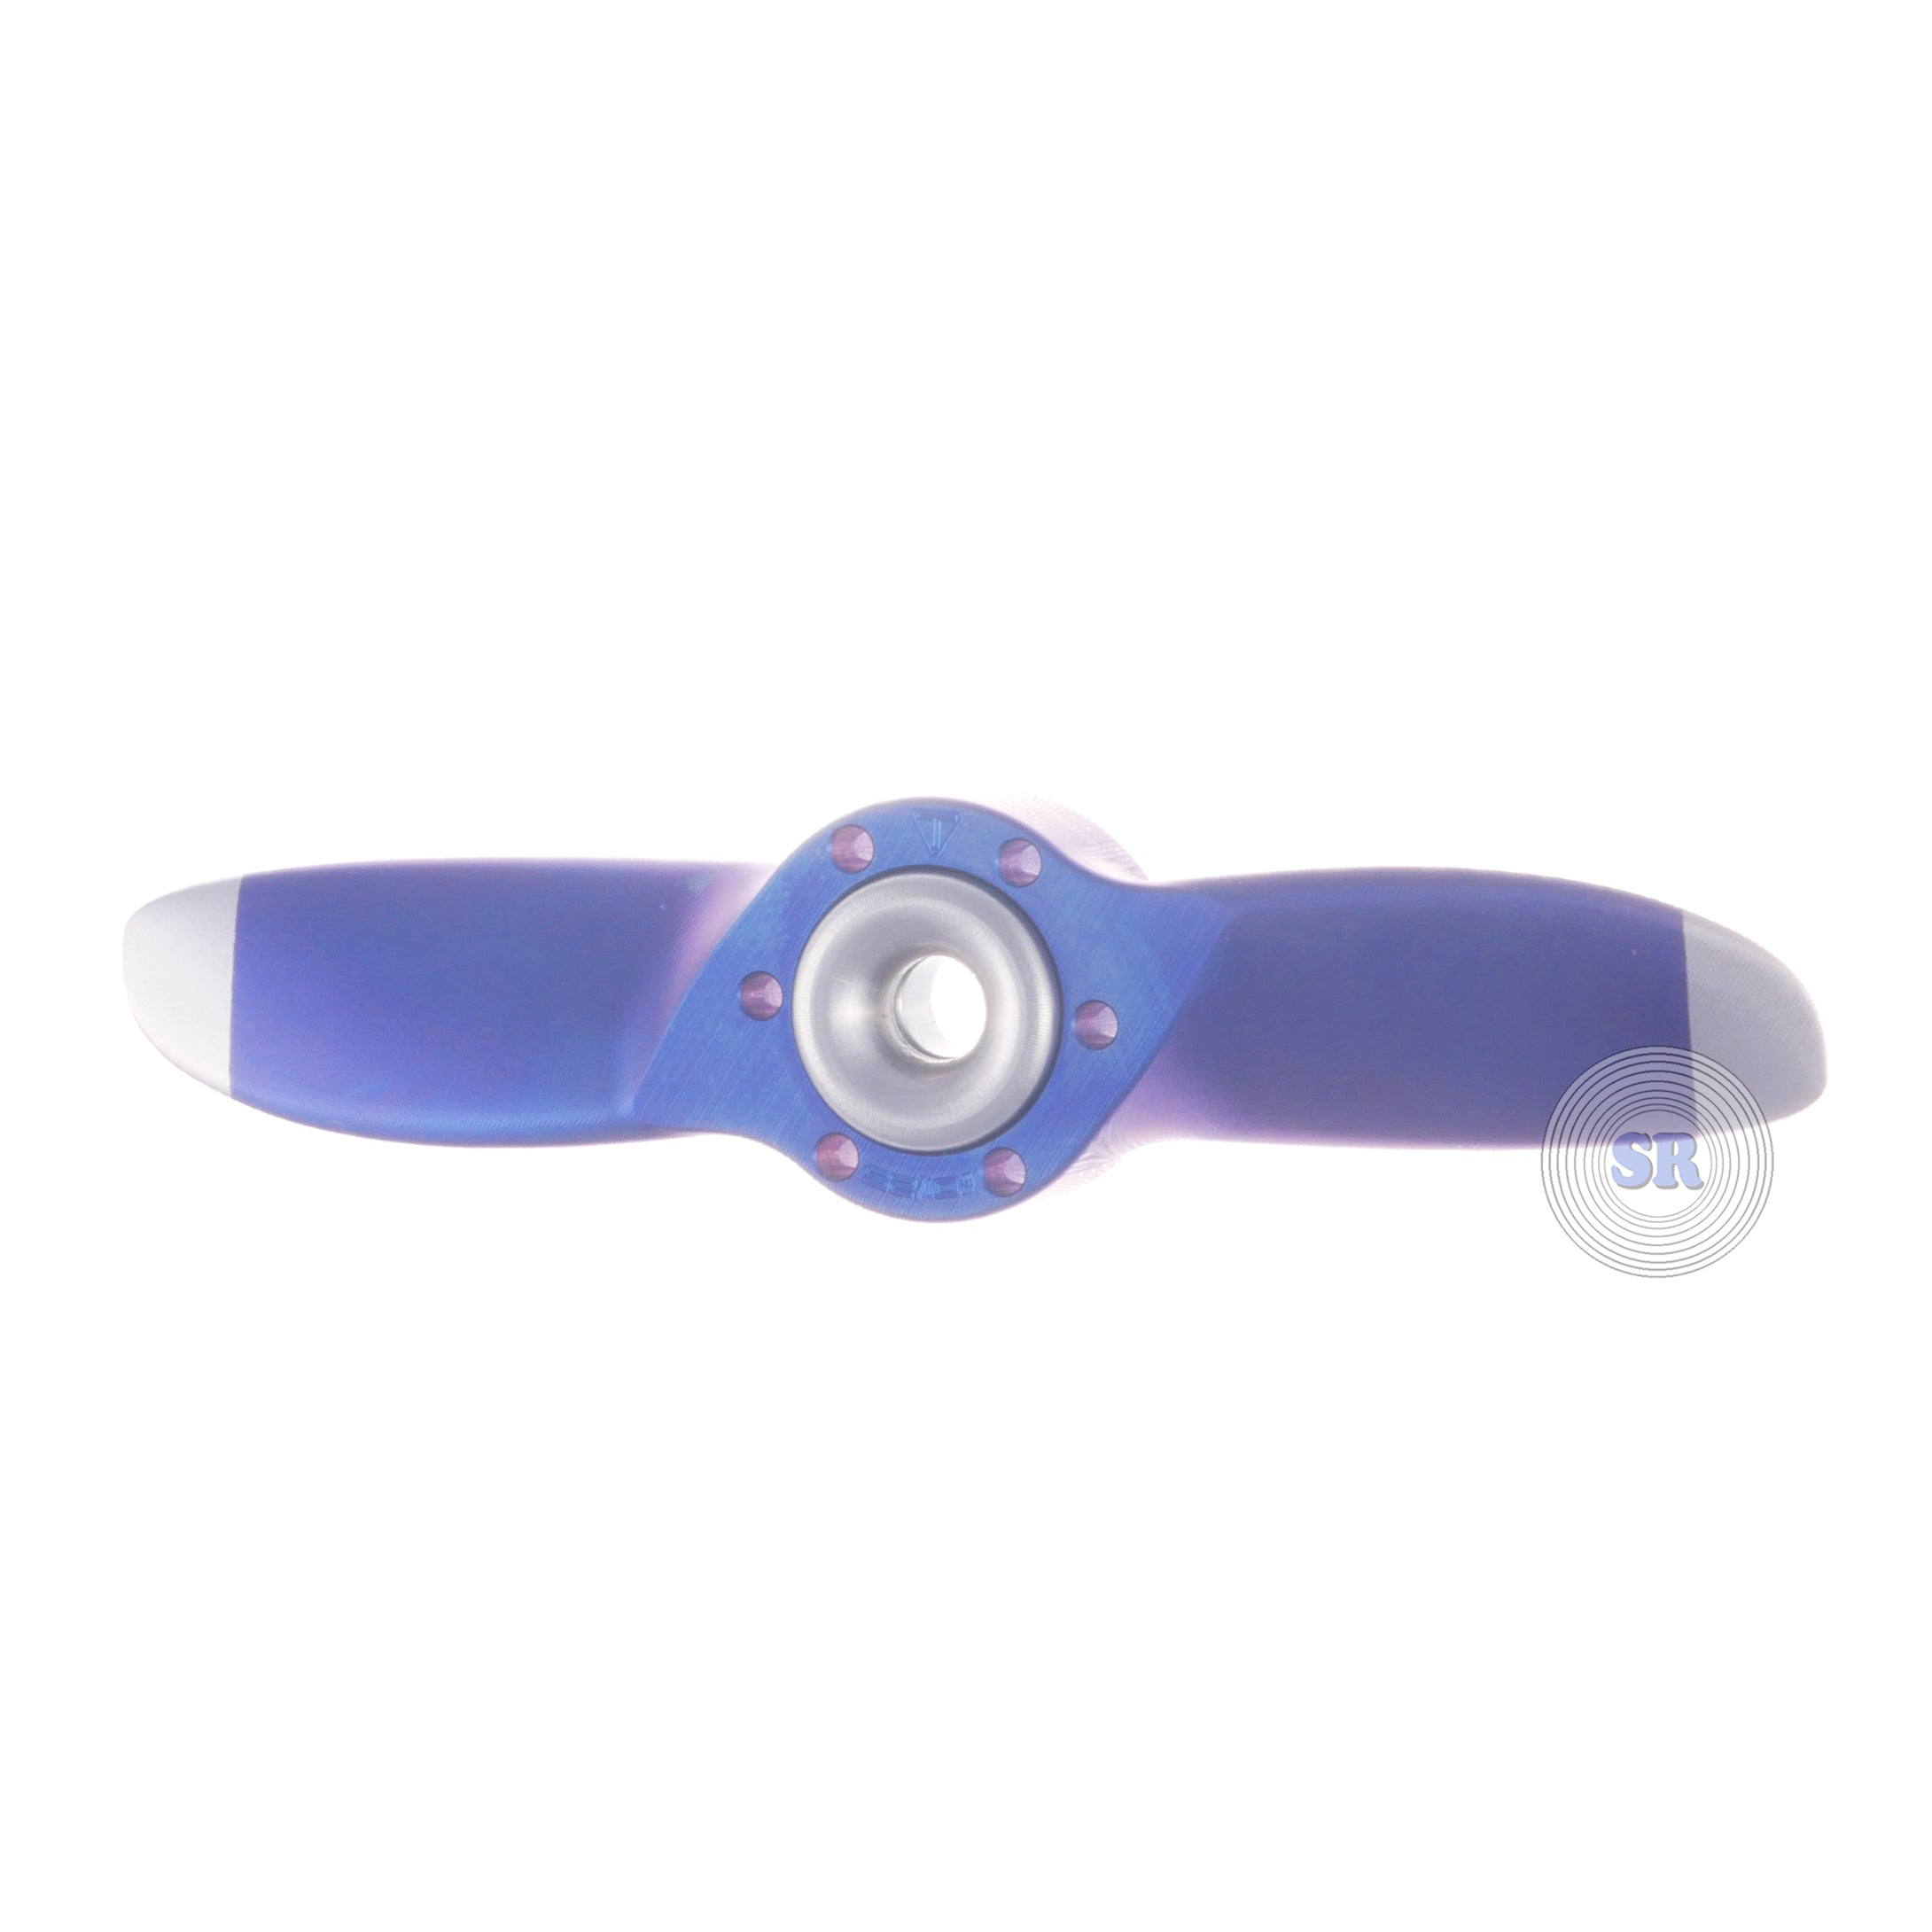 Titan Ring Design • Propeller Custom Spinner • 1/25 • Blue Body , Raw Tips and Buttons